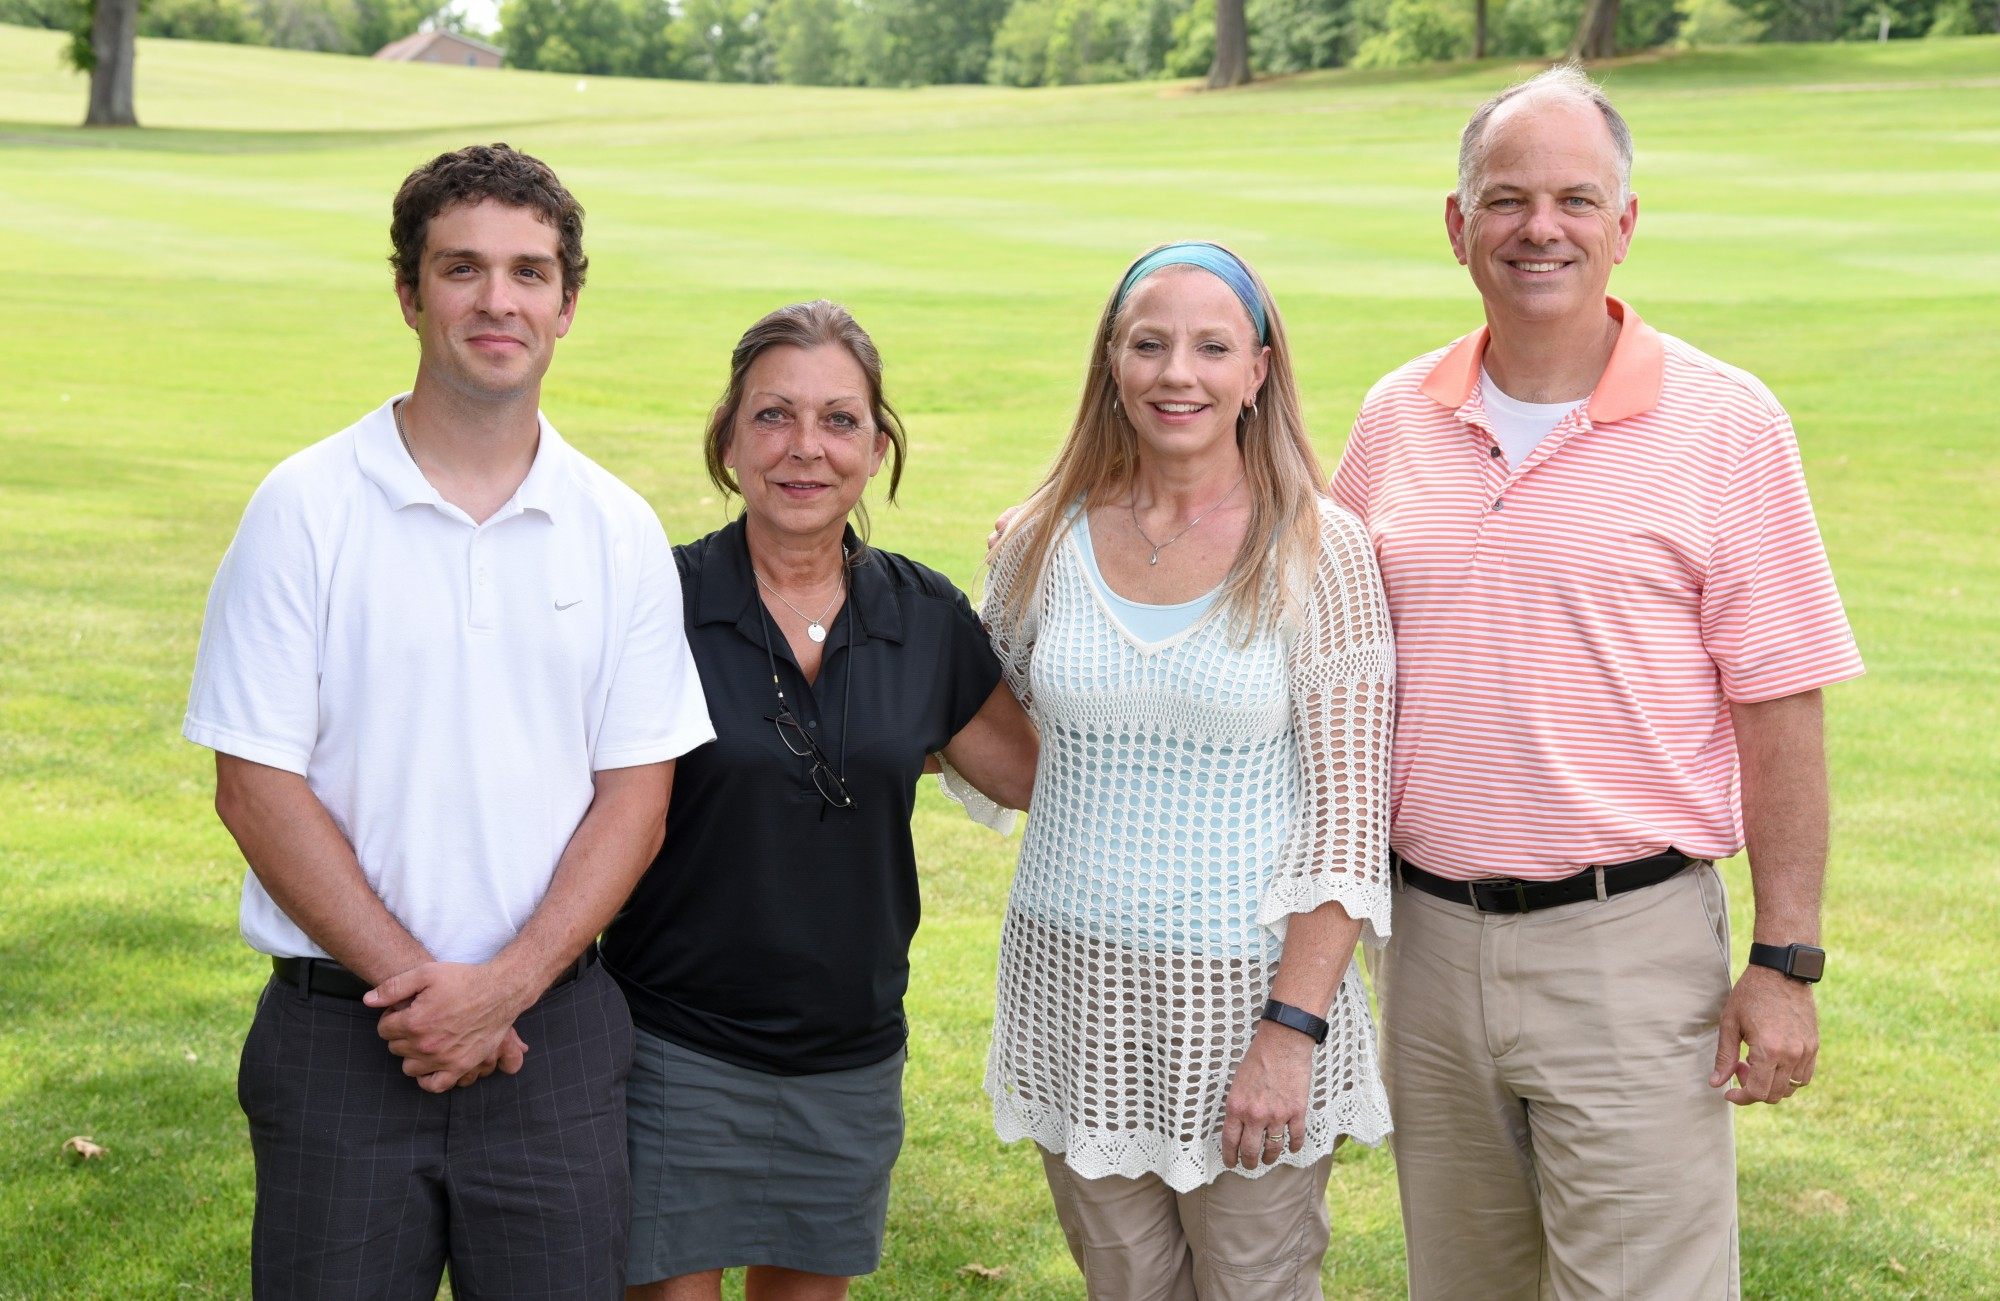 Samaritan Hospital Foundation matches Charity Golf Classic proceeds to generate $38,000 for local initiatives